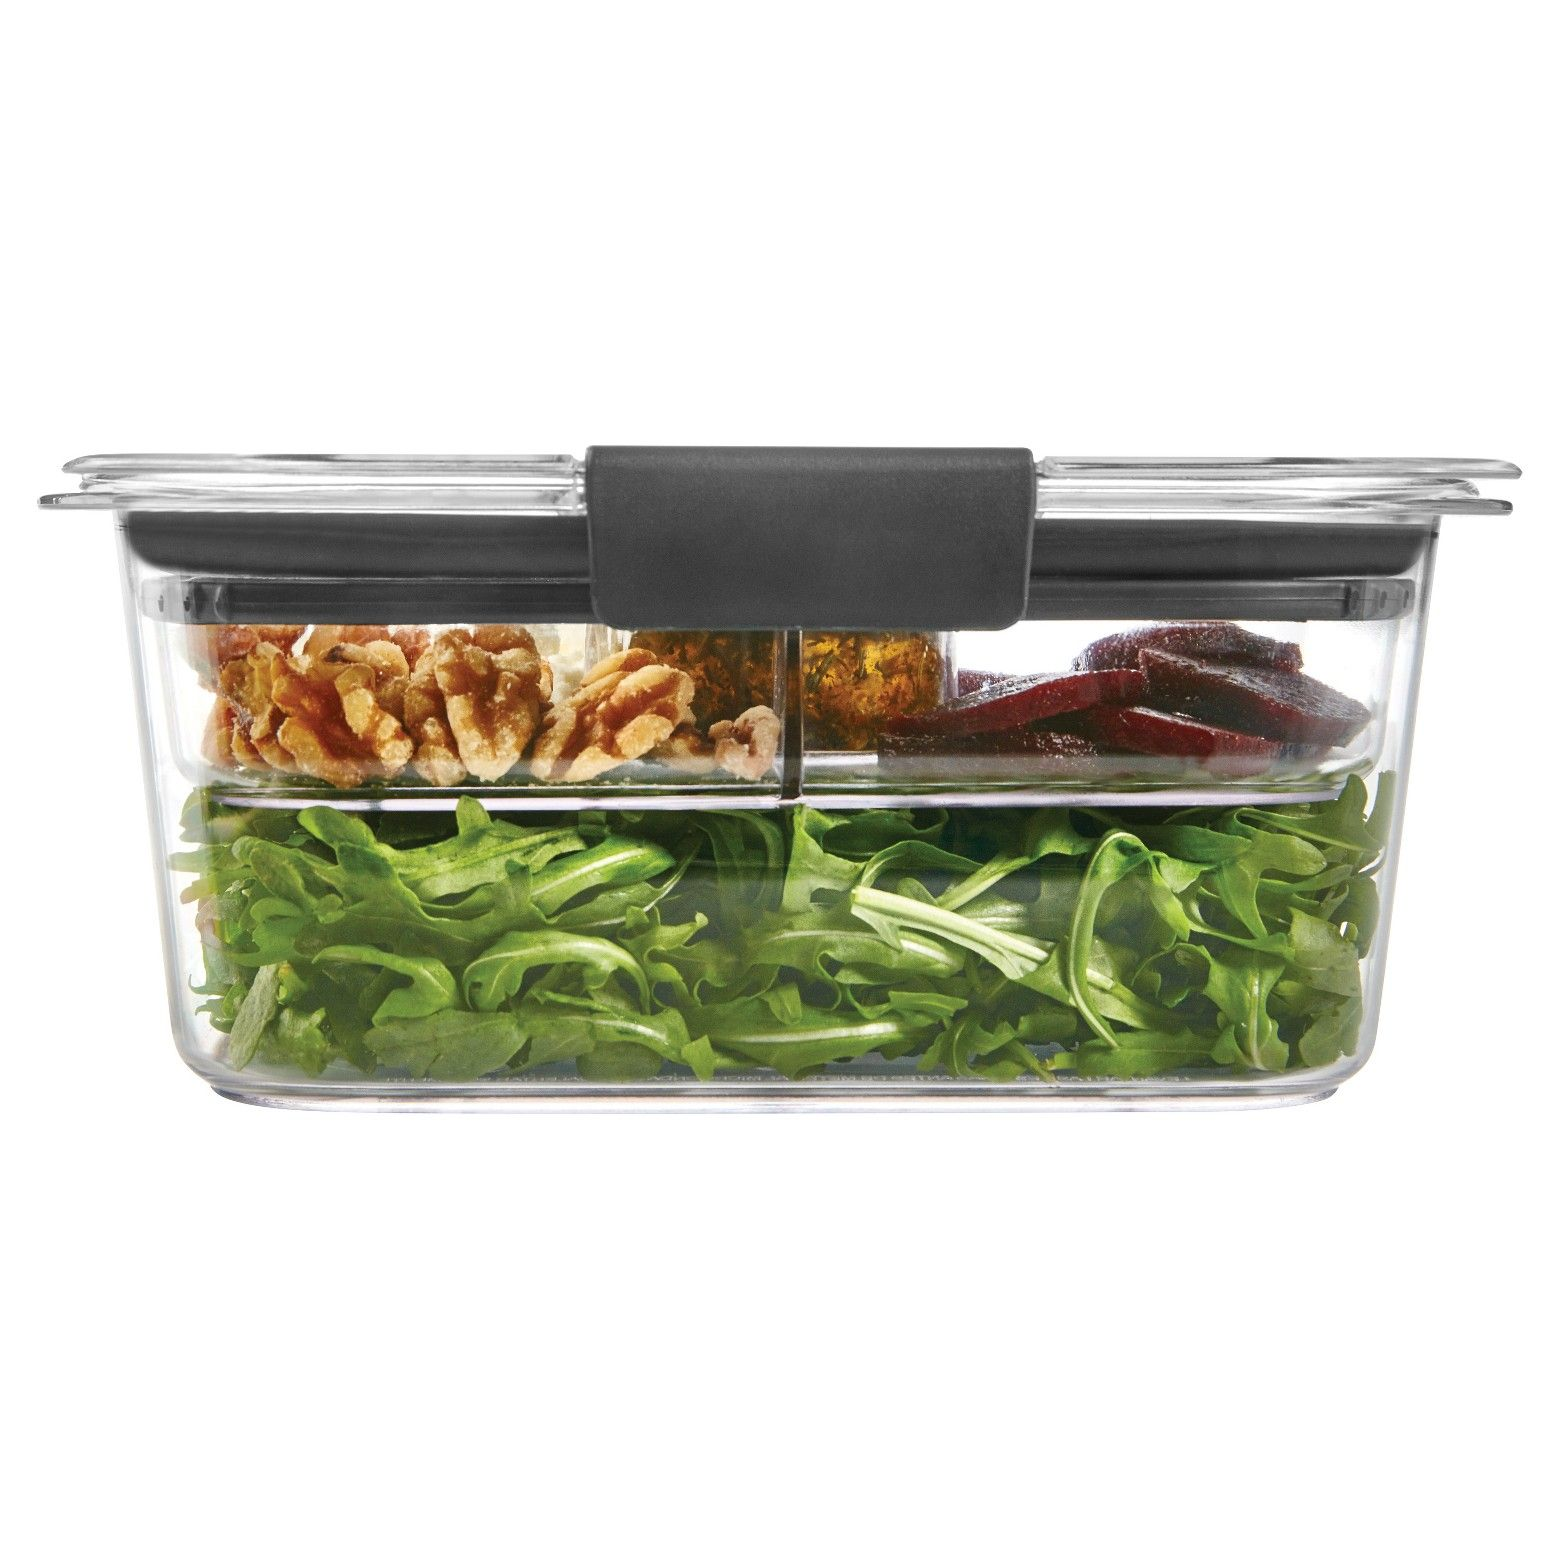 Rubbermaid 4 7 Cup Brilliance Food Storage Container With Images Salad Container Lunch Storage Containers Food Containers